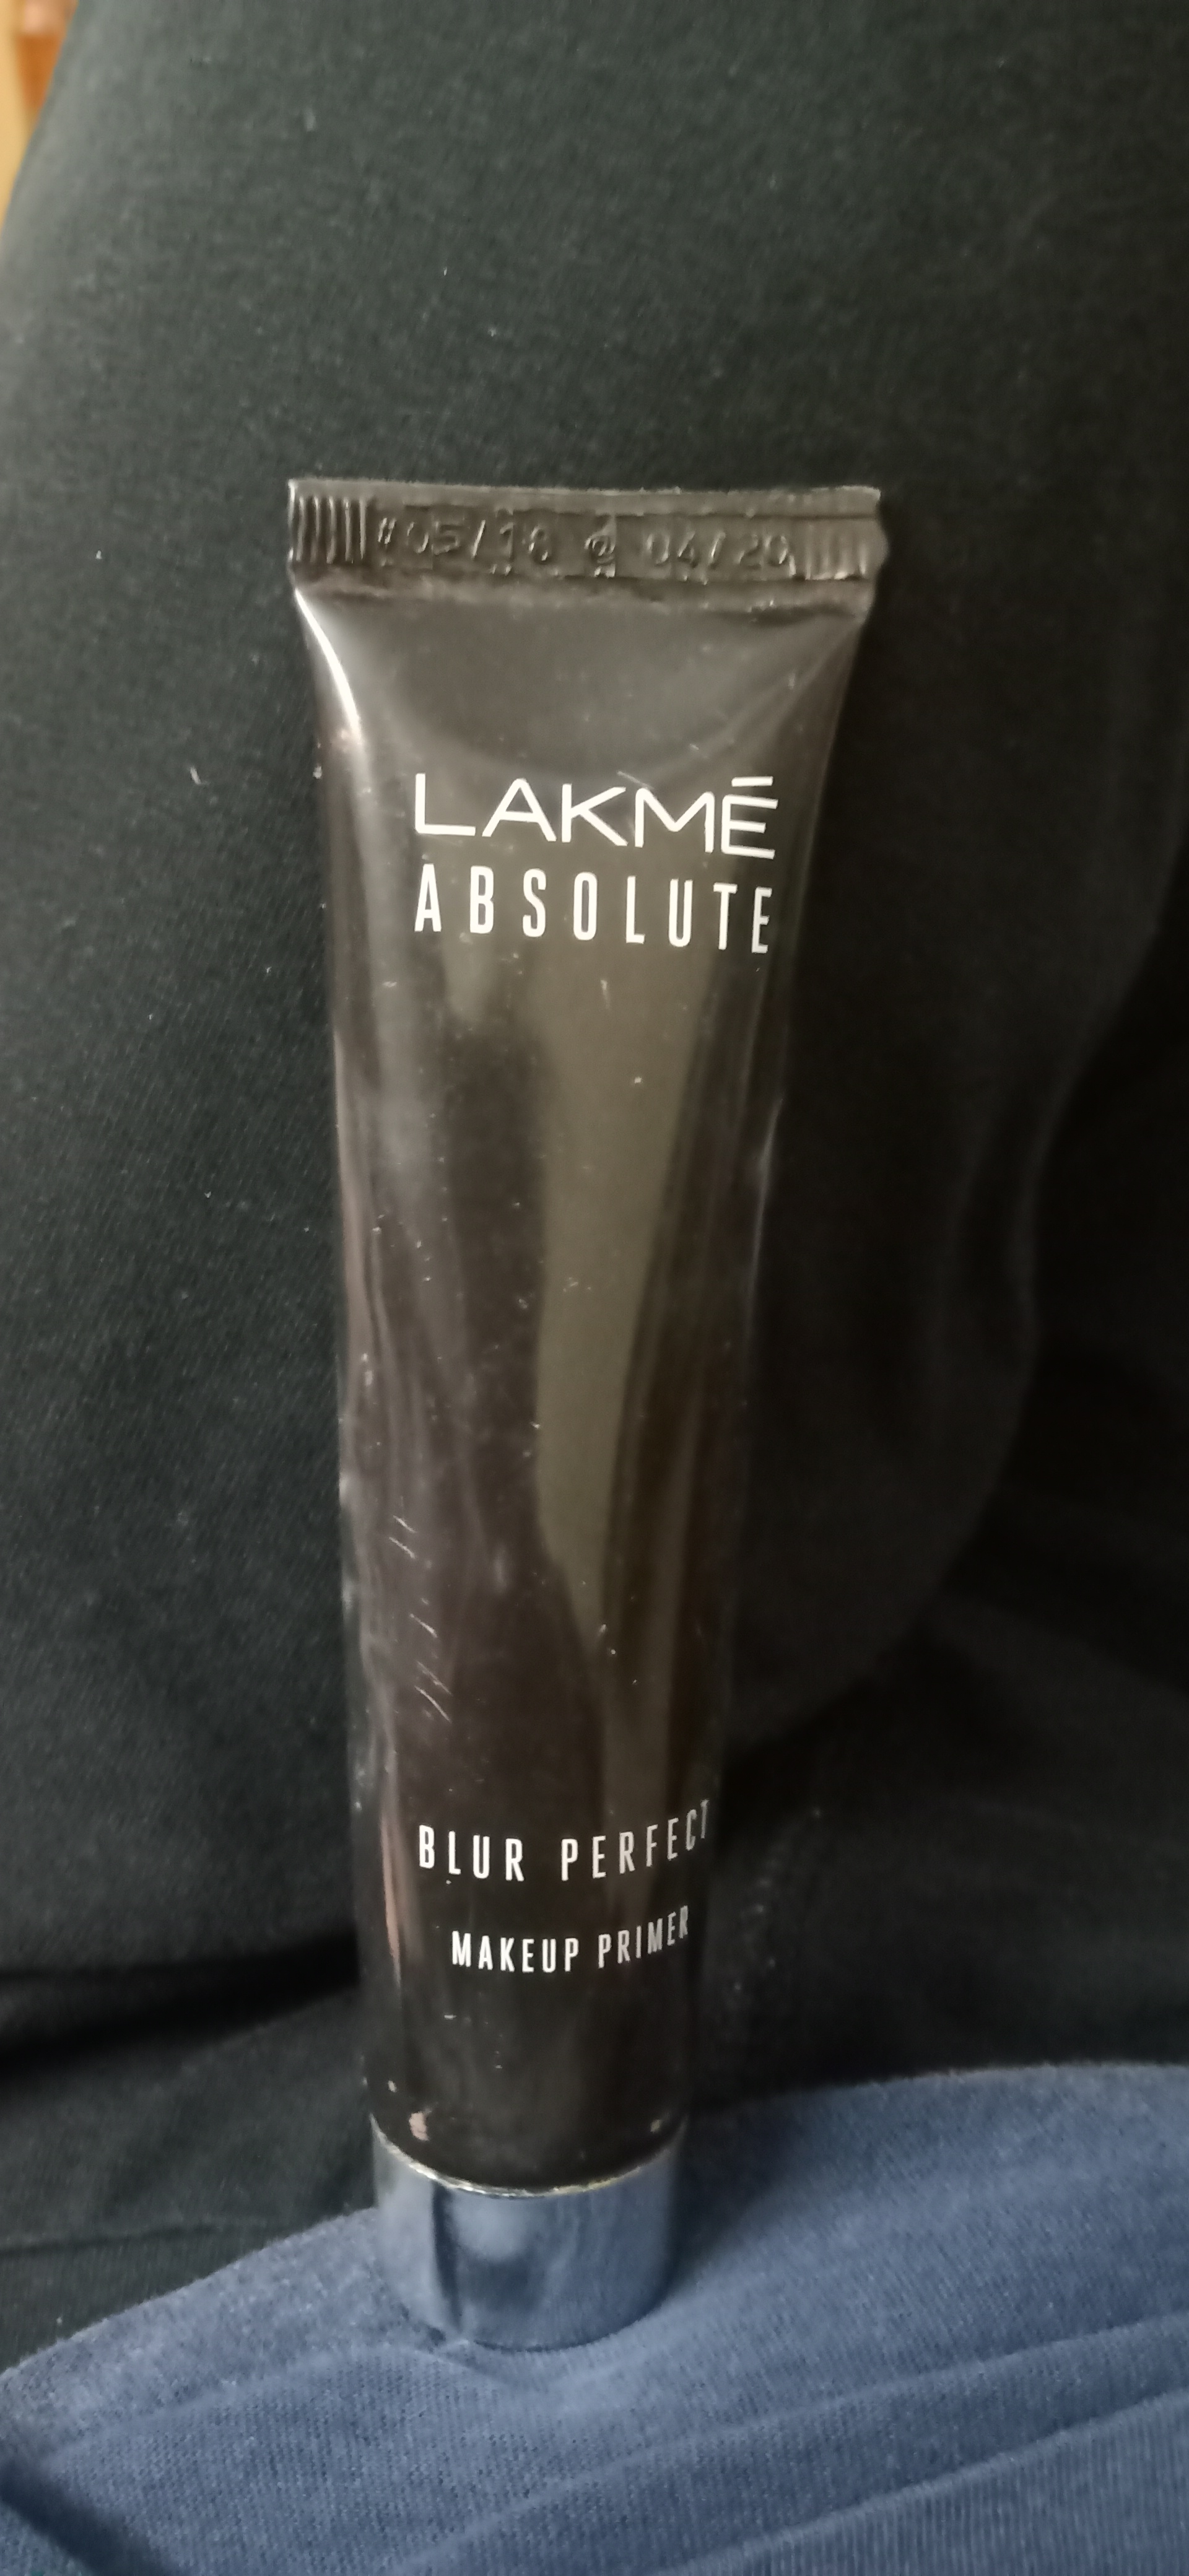 Lakme Absolute Blur Perfect Makeup Primer Reviews Shades Benefits Price How To Use It